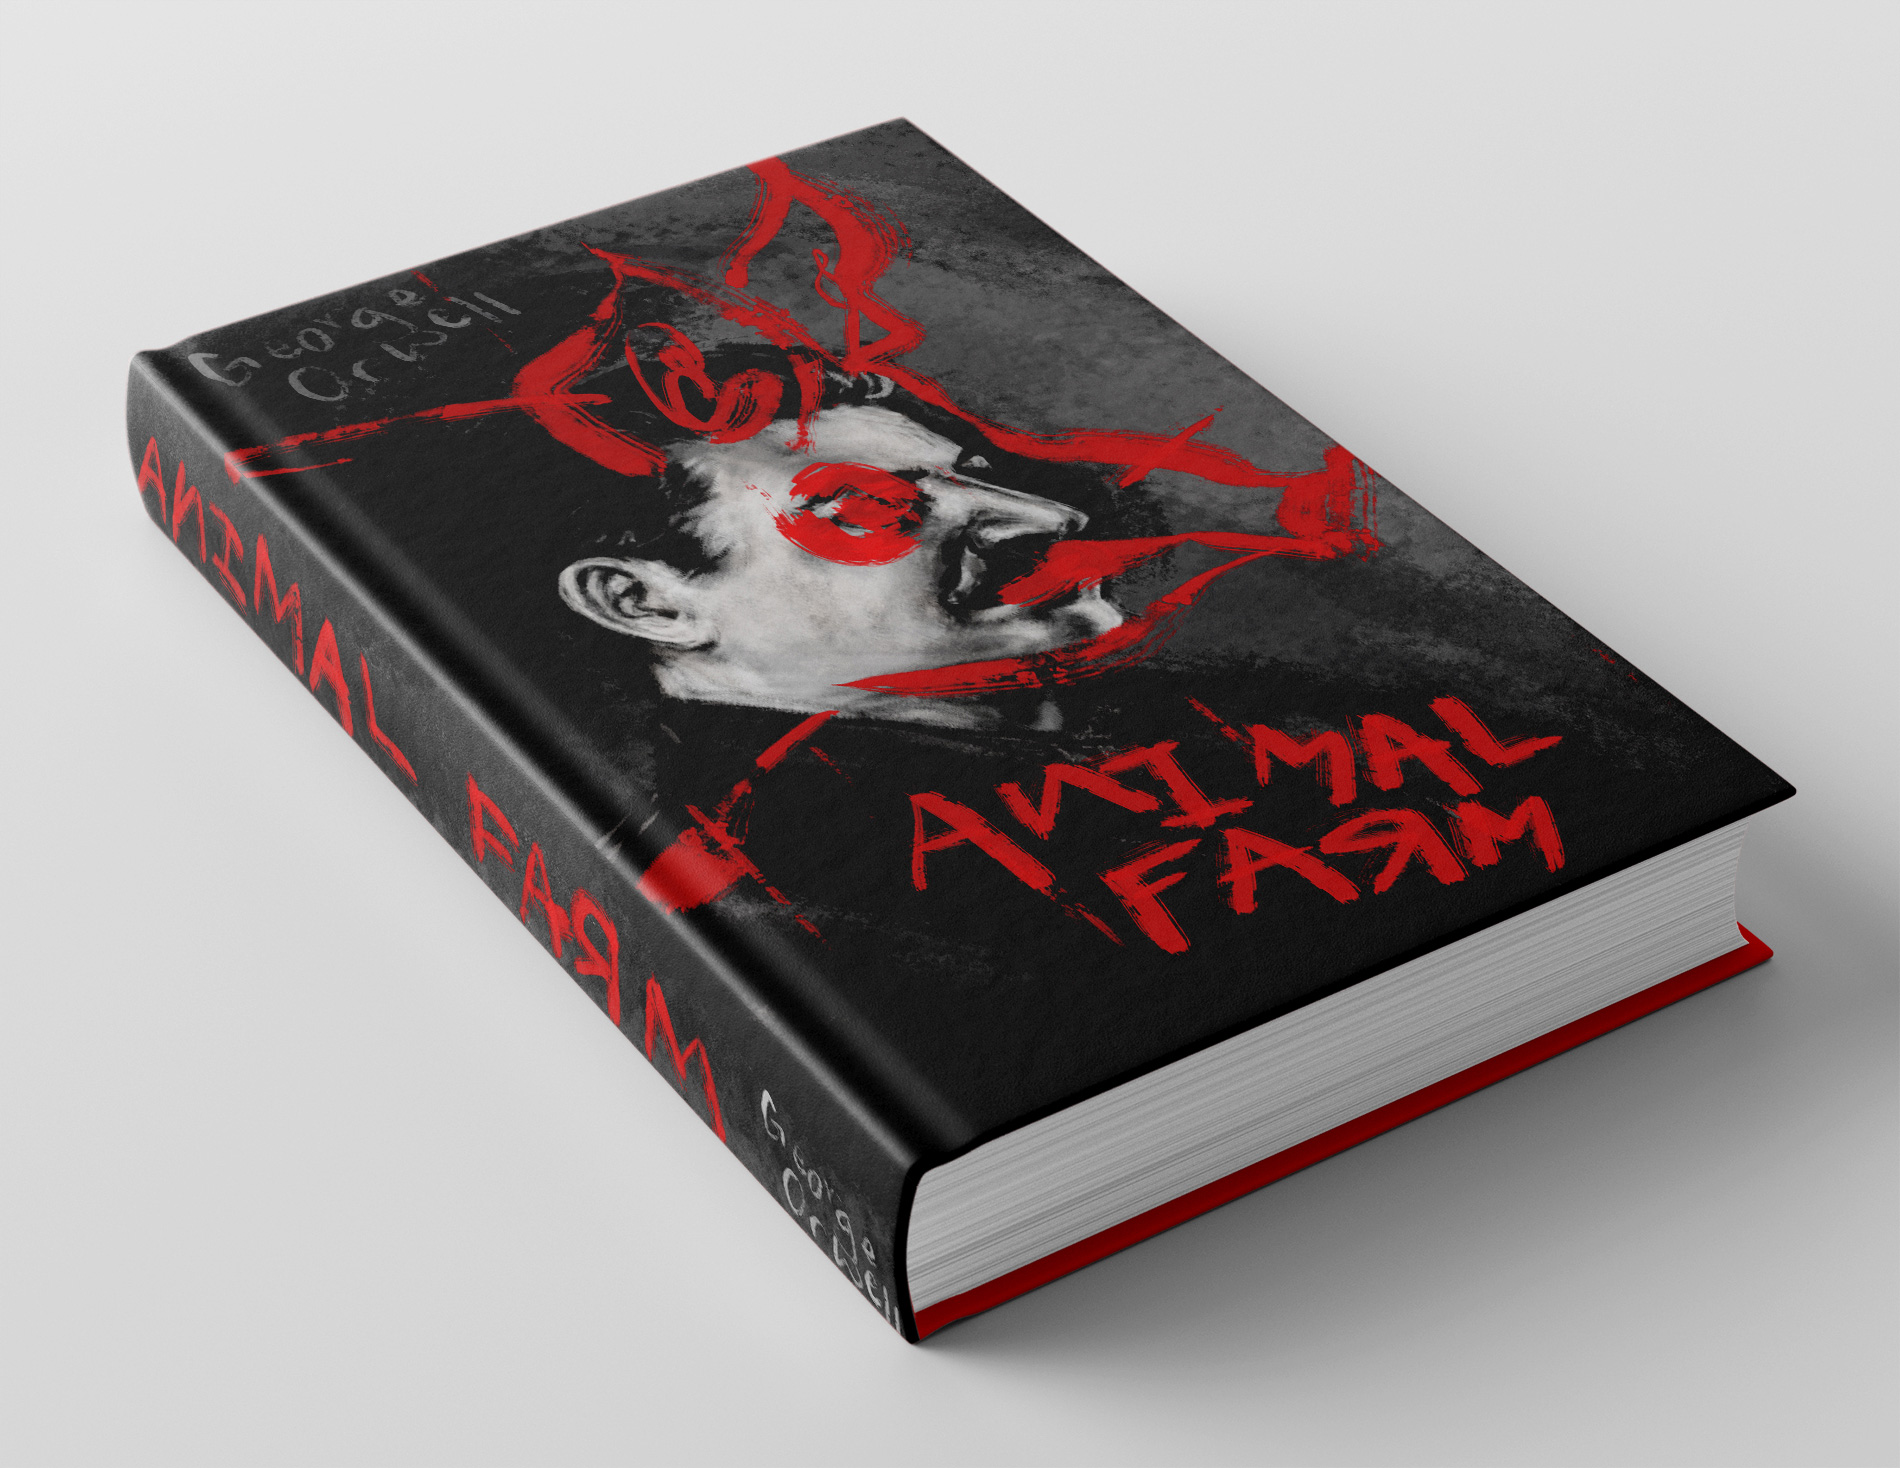 Sophie Young for Animal Farm - Book Cover Editorial & Book Design Merit